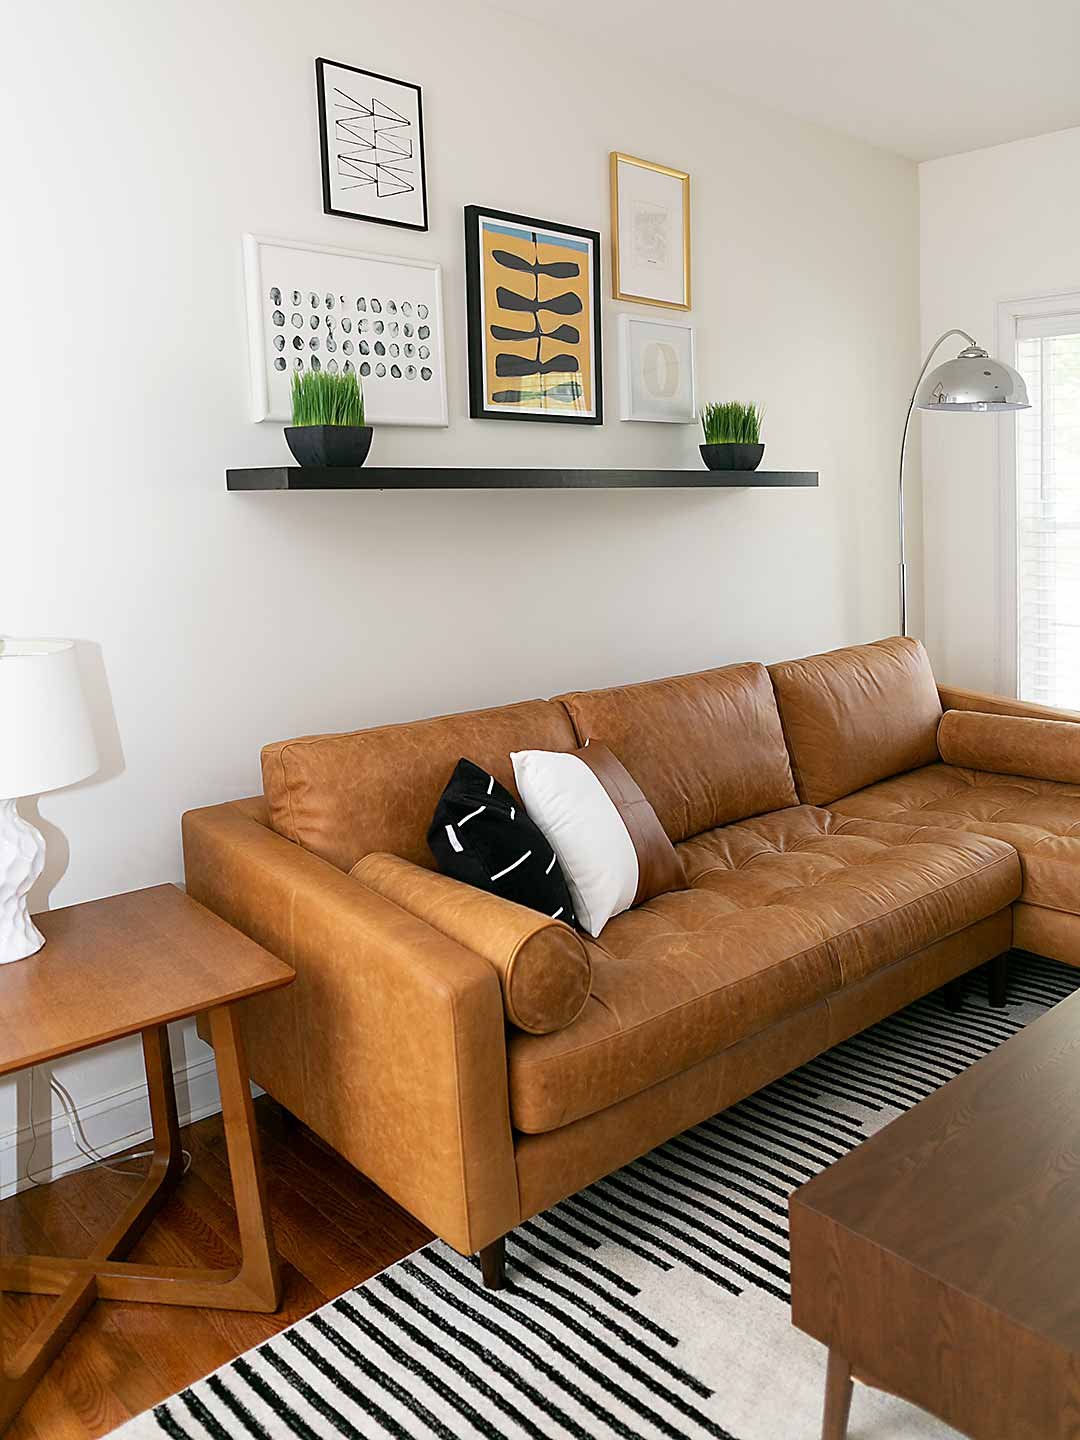 Neat and clean Scandinavian styled living room